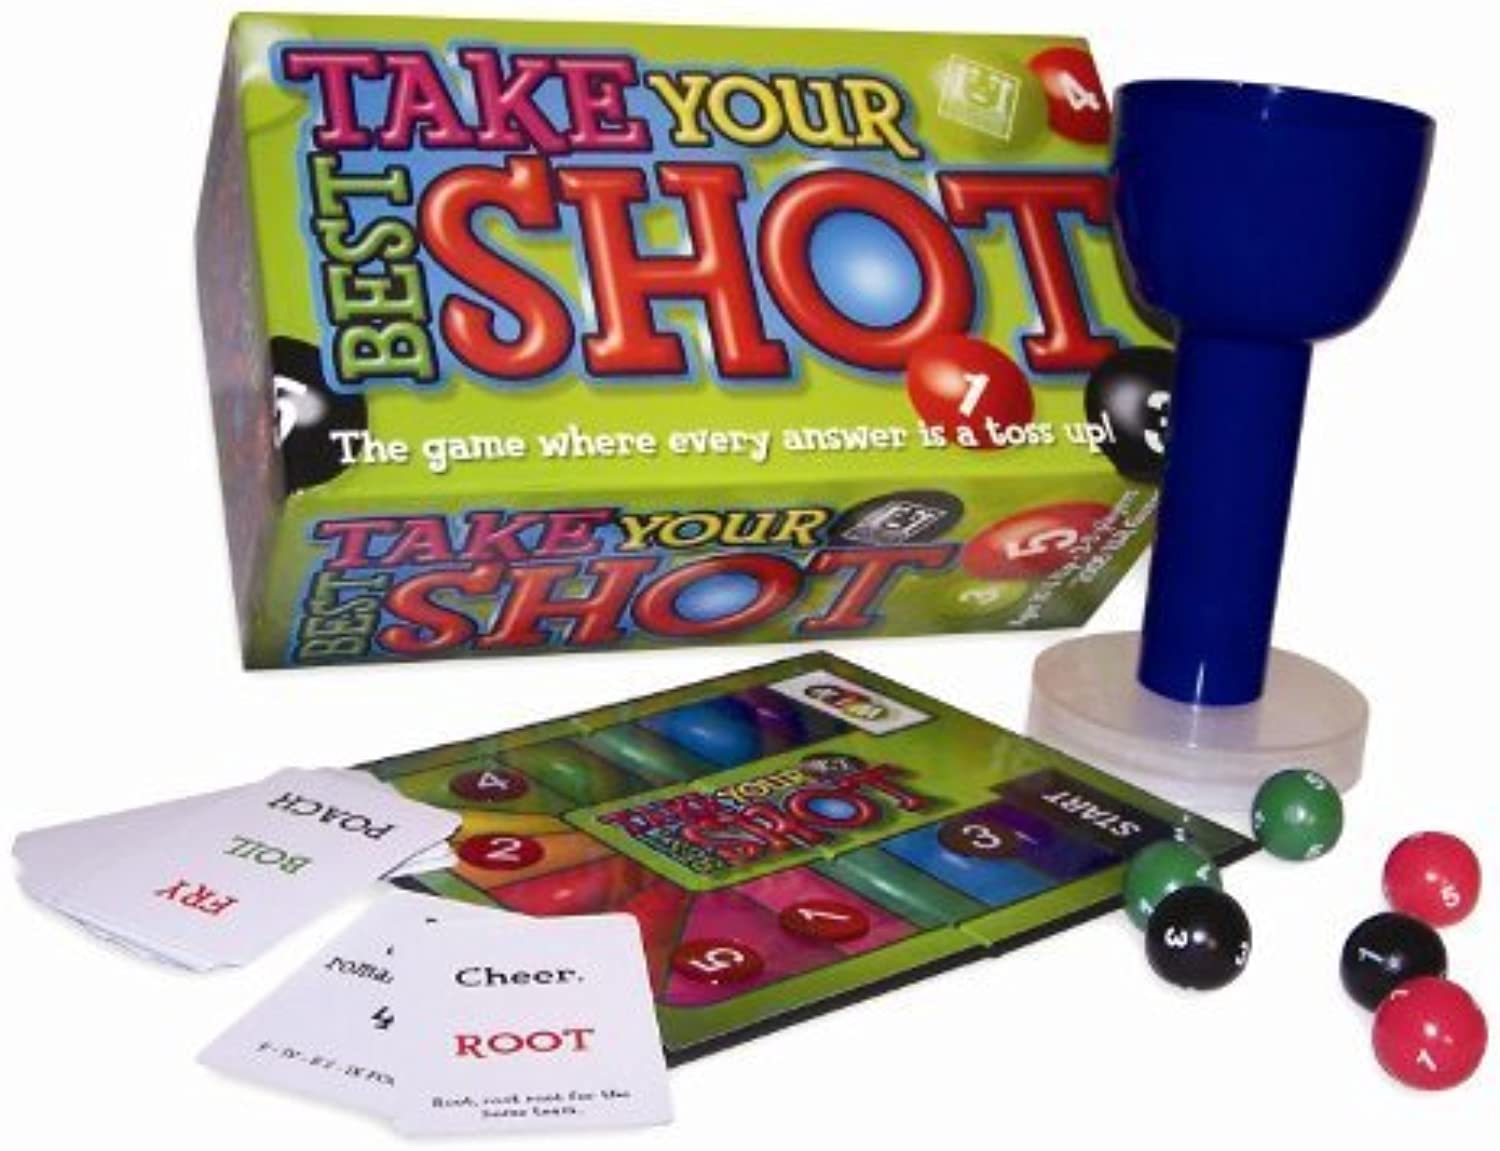 Take Your Best Shot by R & R Games